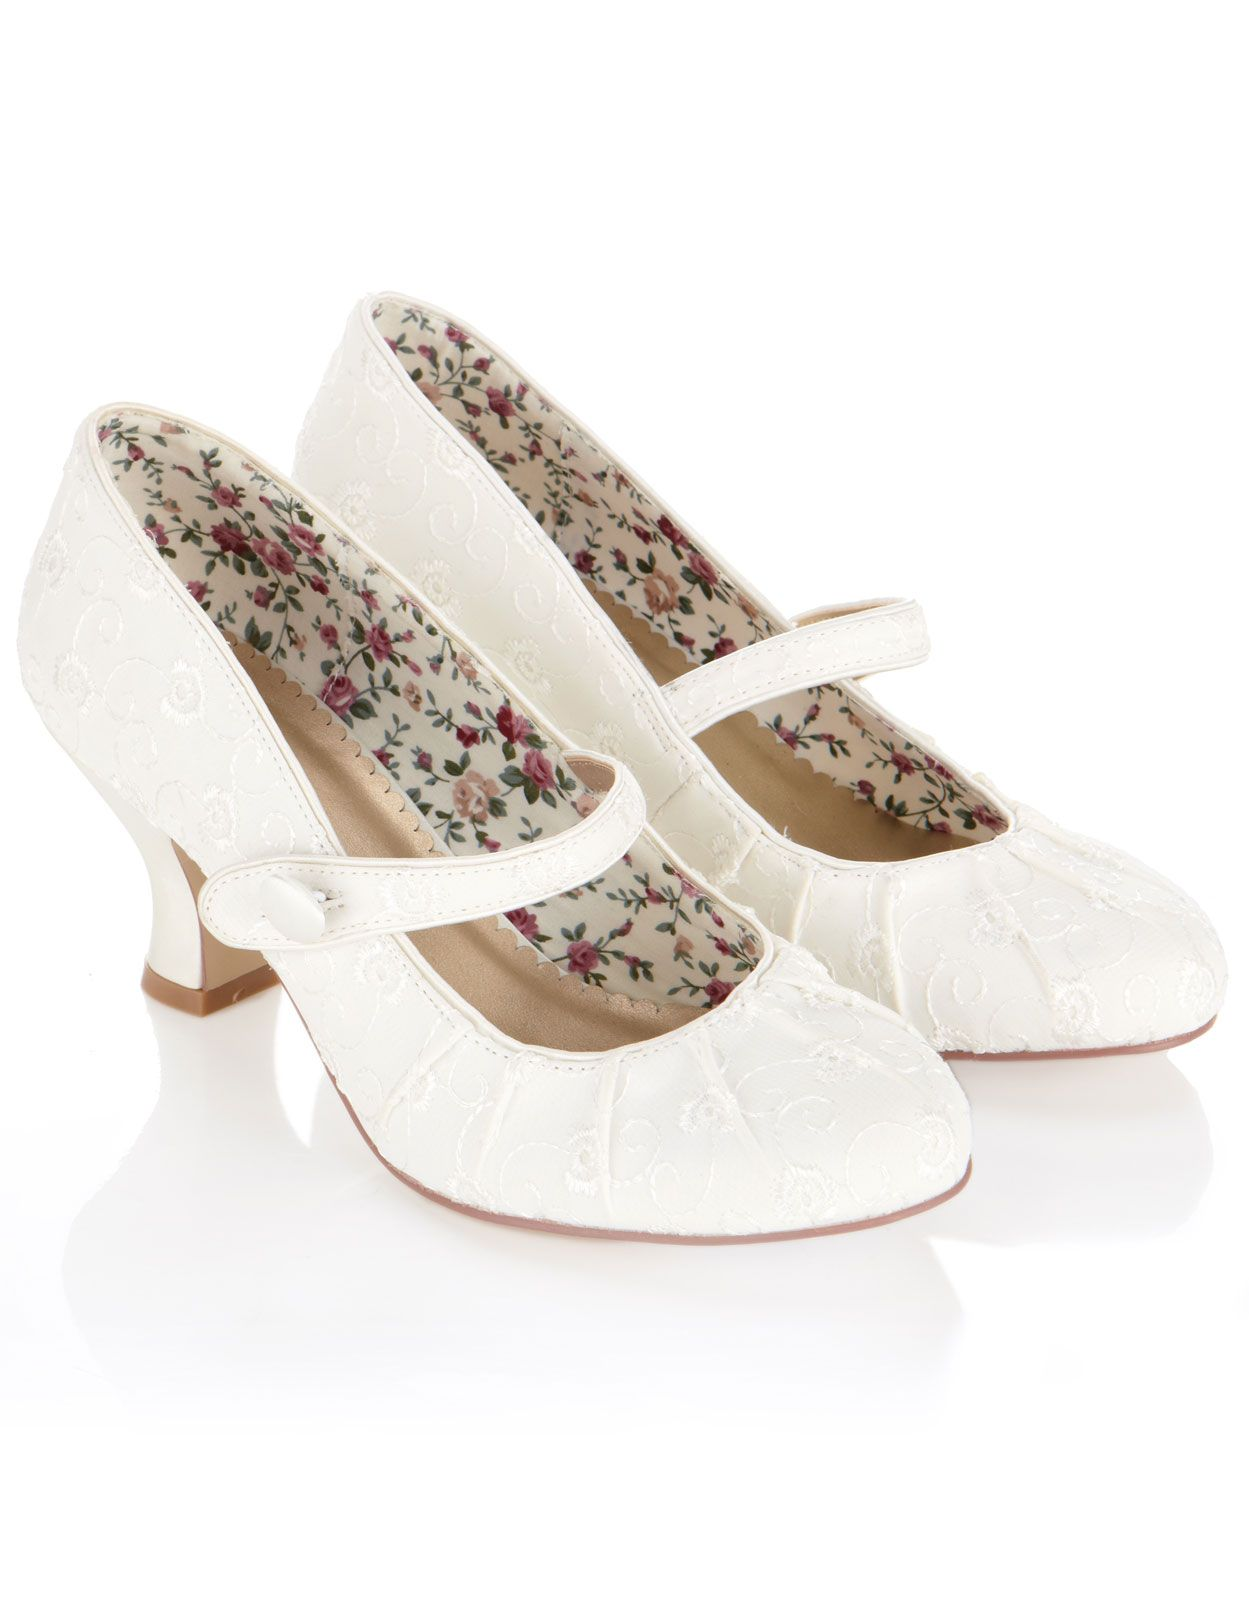 49492e3ff9f These are the prettiest bridal shoes I have ever seen! I adore Mary Jane s  and the pleated fabric and embroidery on these ivory shoes is just perfect.